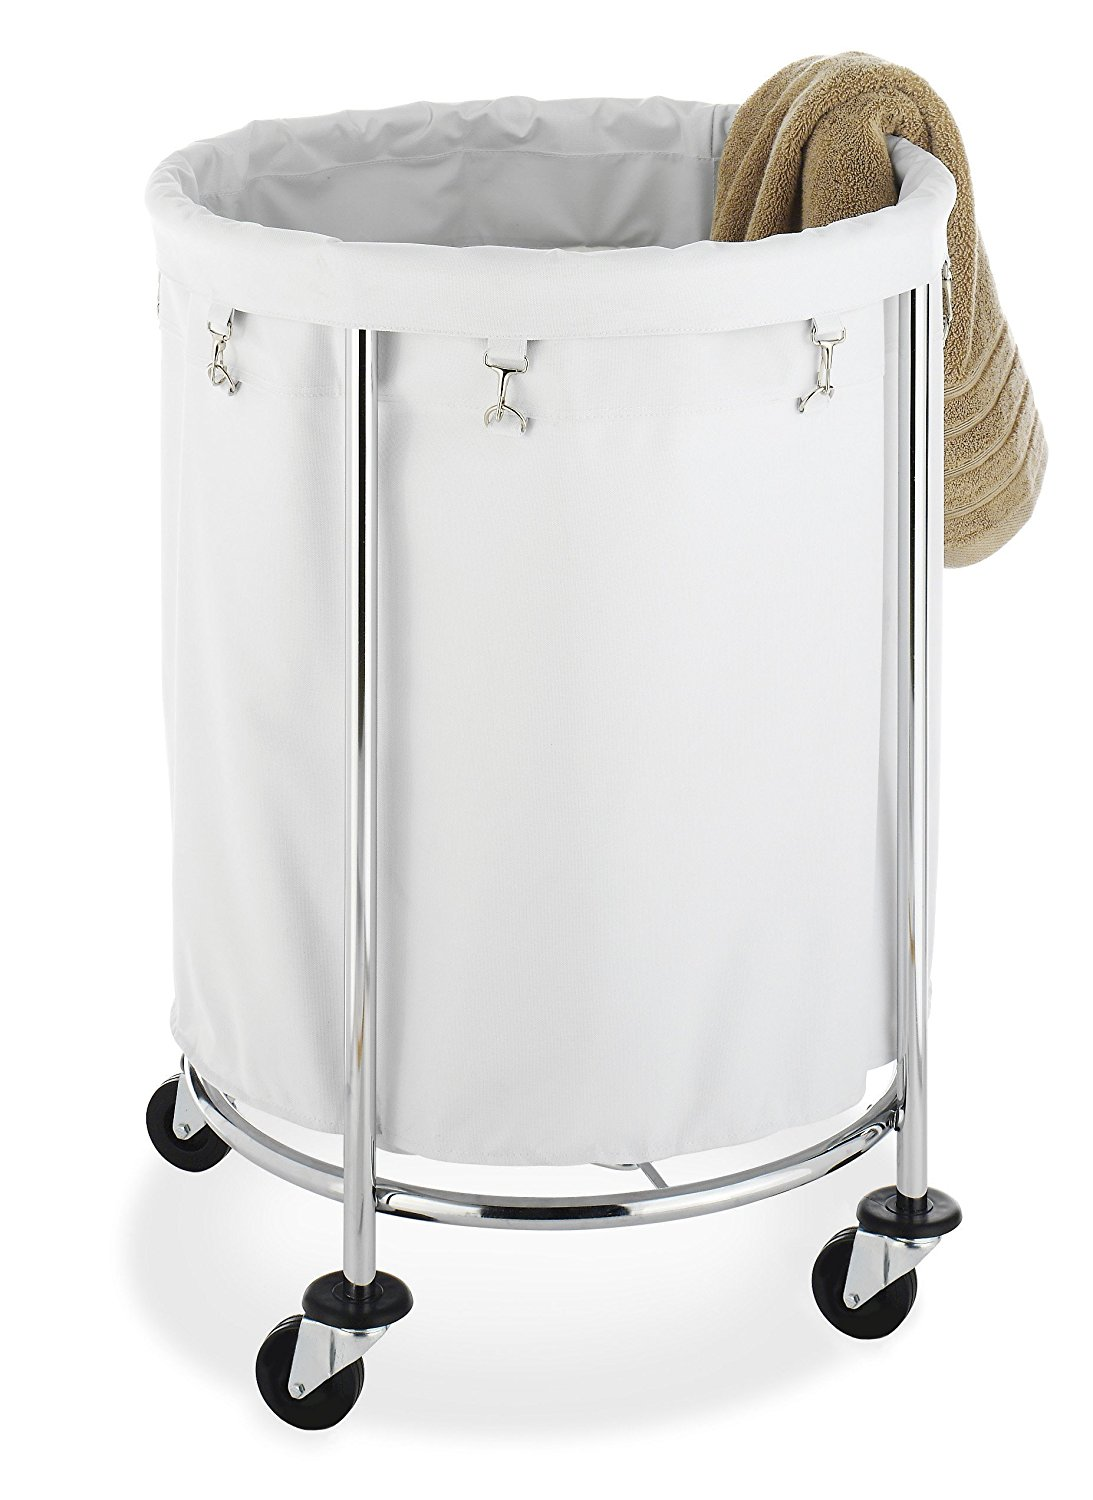 Commercial Round Laundry Hamper, Chrome by Whitmor